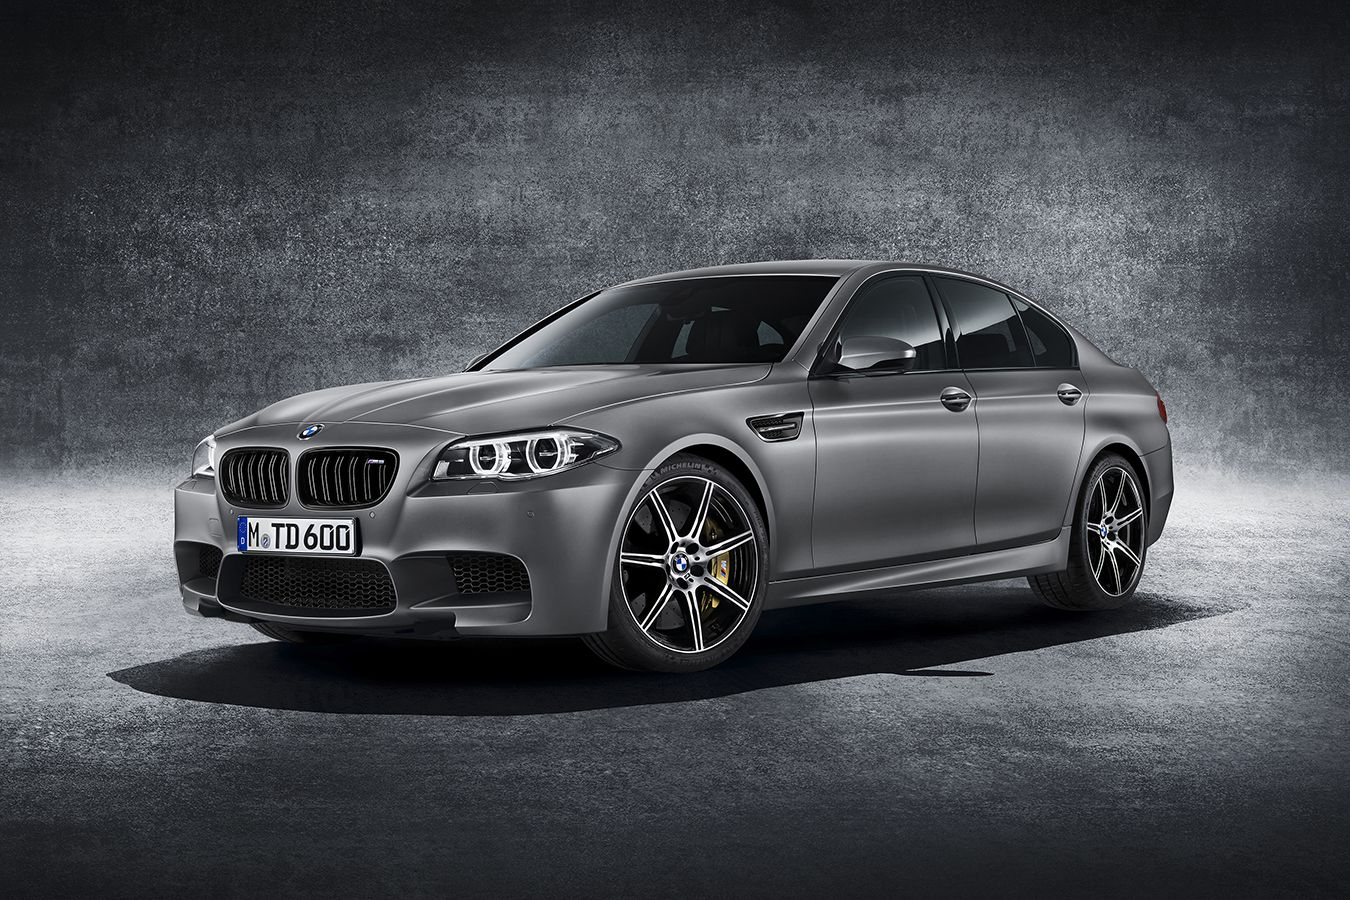 Kith Debuts Limited Edition Bmw M4 Competition Coupe Bmw M5 Bmw Cars Bmw